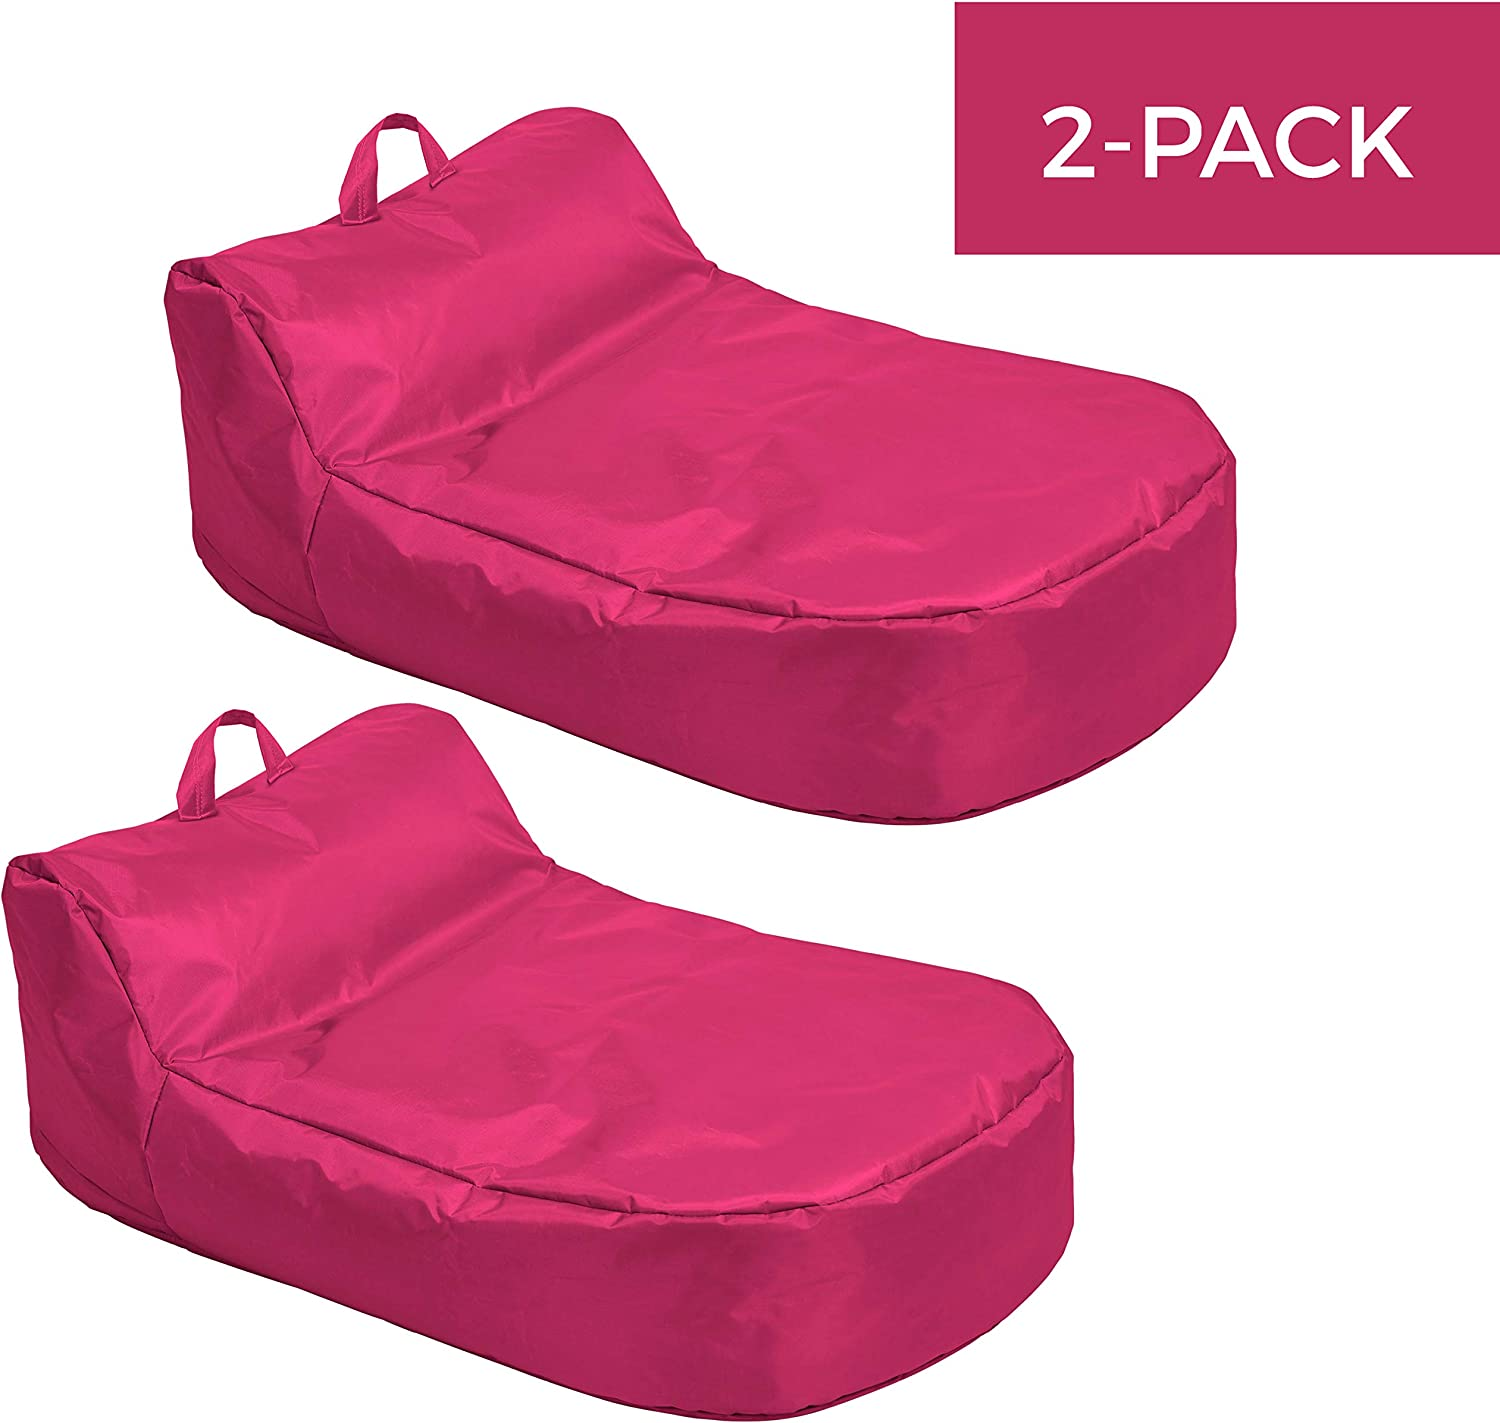 Cali Siesta Sack Bean Bag Chair, Dirt-Resistant Coated Oxford Fabric, Flexible Seating for Kids, Teens, Adults, Furniture for Bedrooms, Dorm Rooms, Classrooms - Raspberry (2-Pack) (10485-RS)